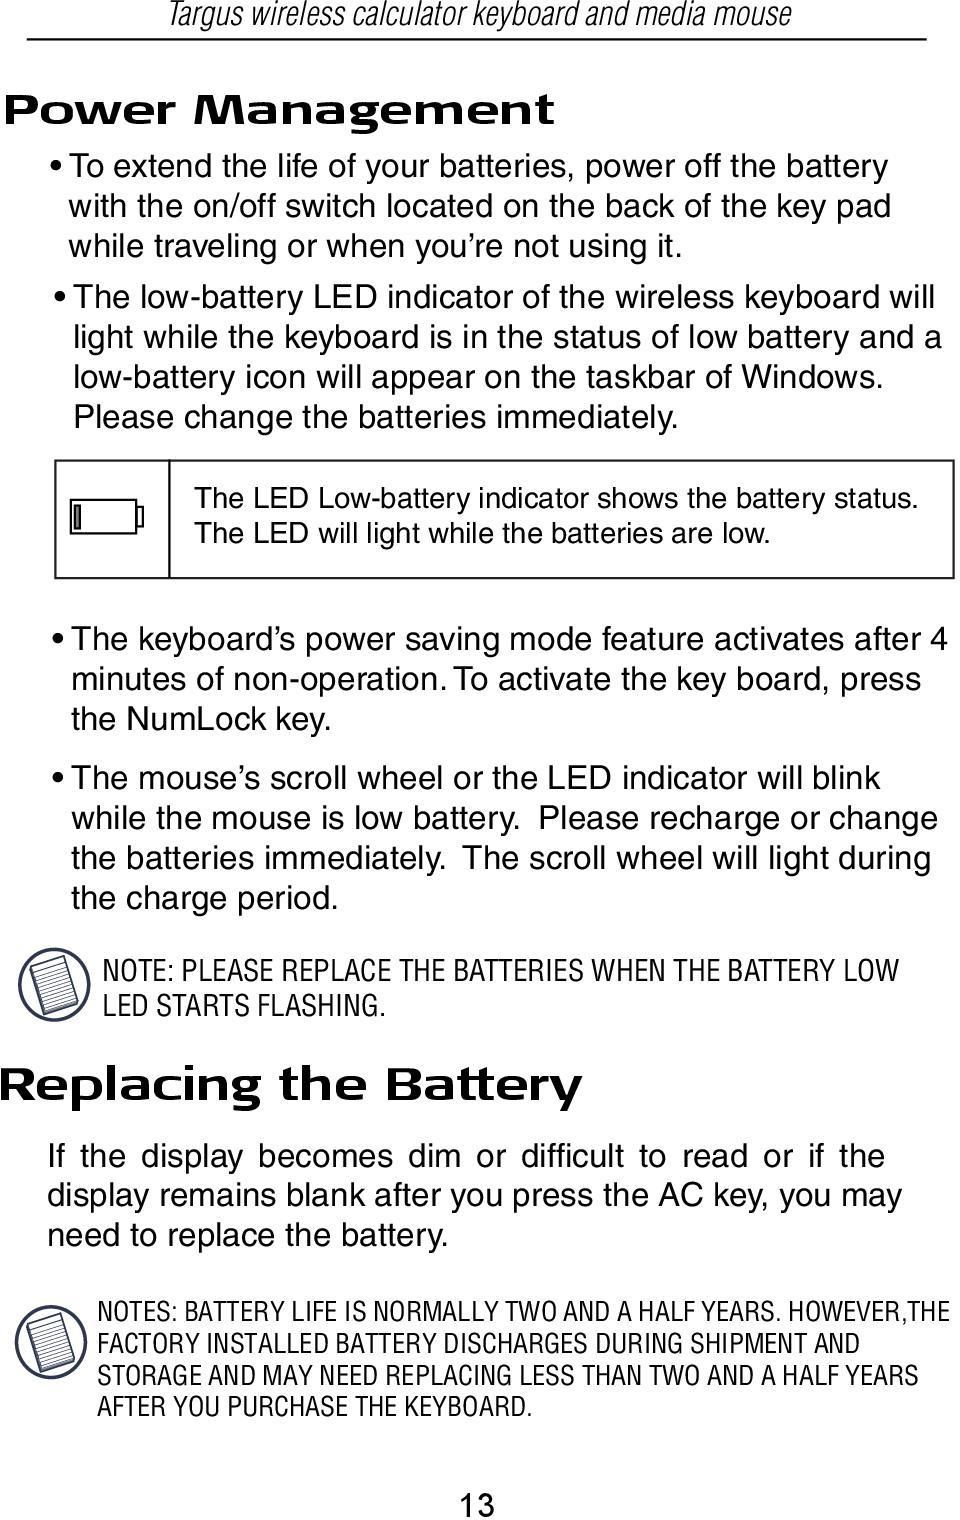 The low-battery LED indicator of the wireless keyboard will light while the keyboard is in the status of low battery and a low-battery icon will appear on the taskbar of Windows.